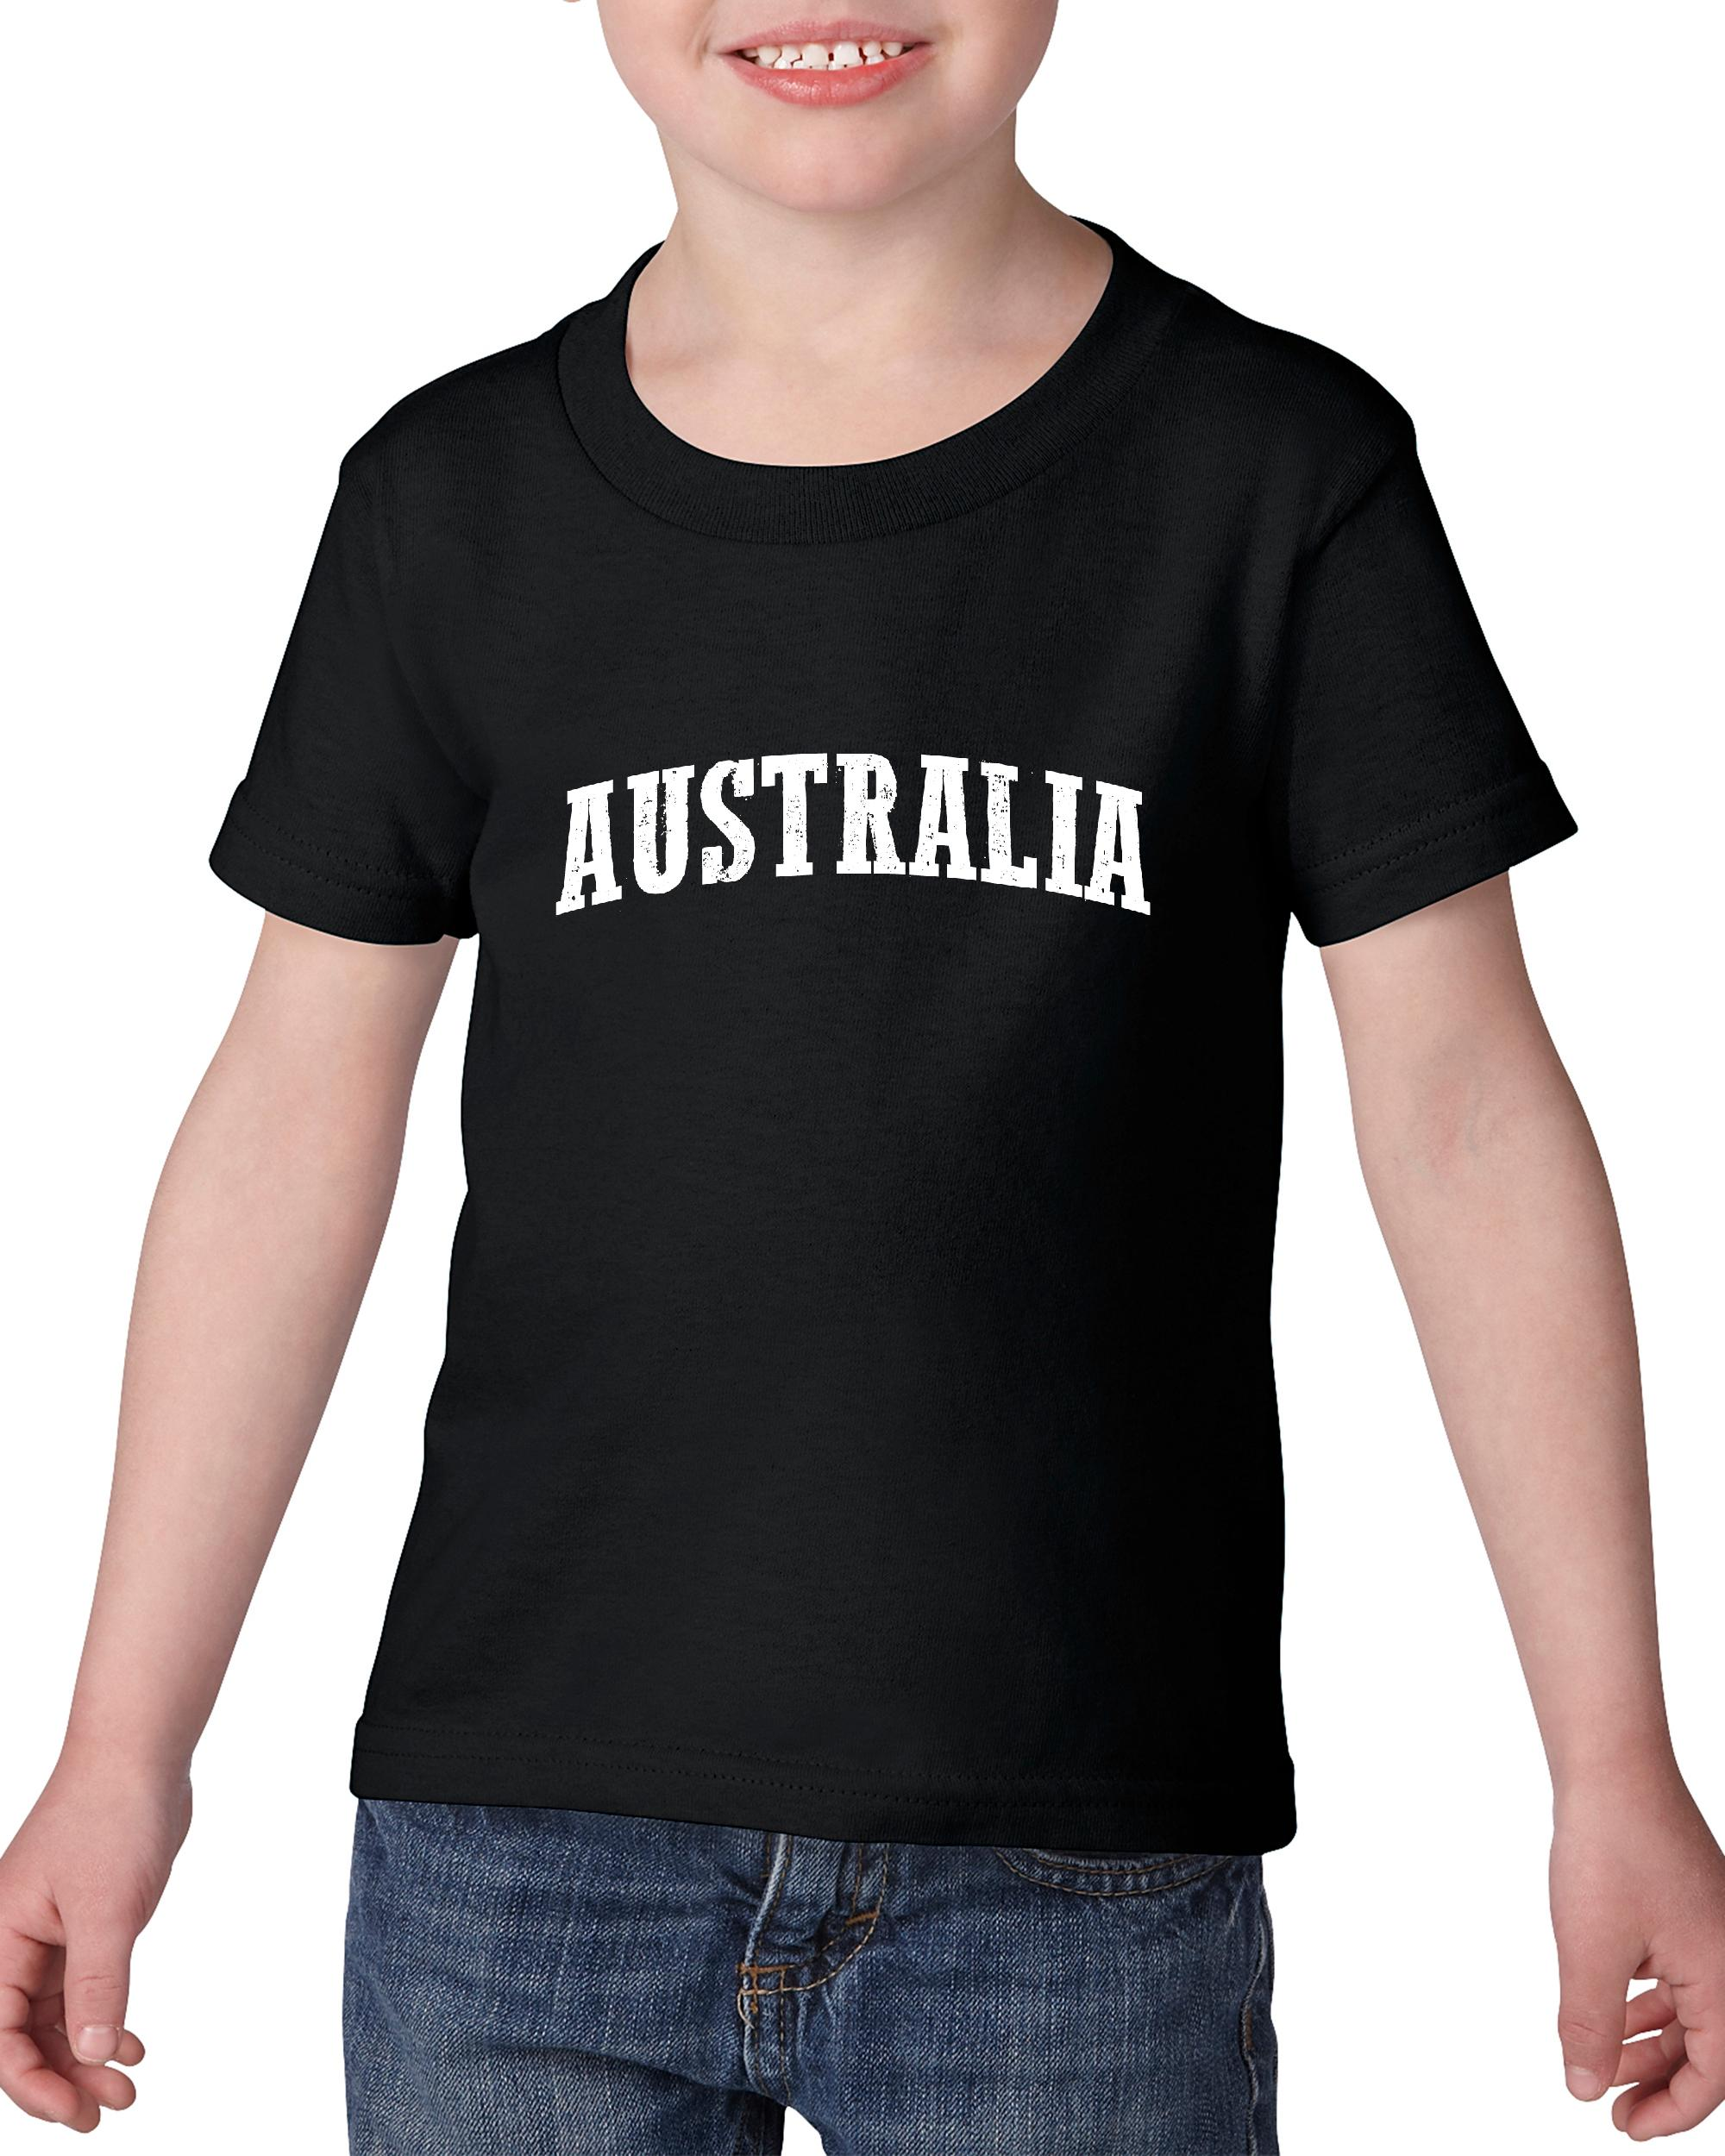 Artix What To Do in Australia Travel Guide Visa Sdyney Map Australian Flag Heavy Cotton Toddler Kids T-Shirt Tee Clothing